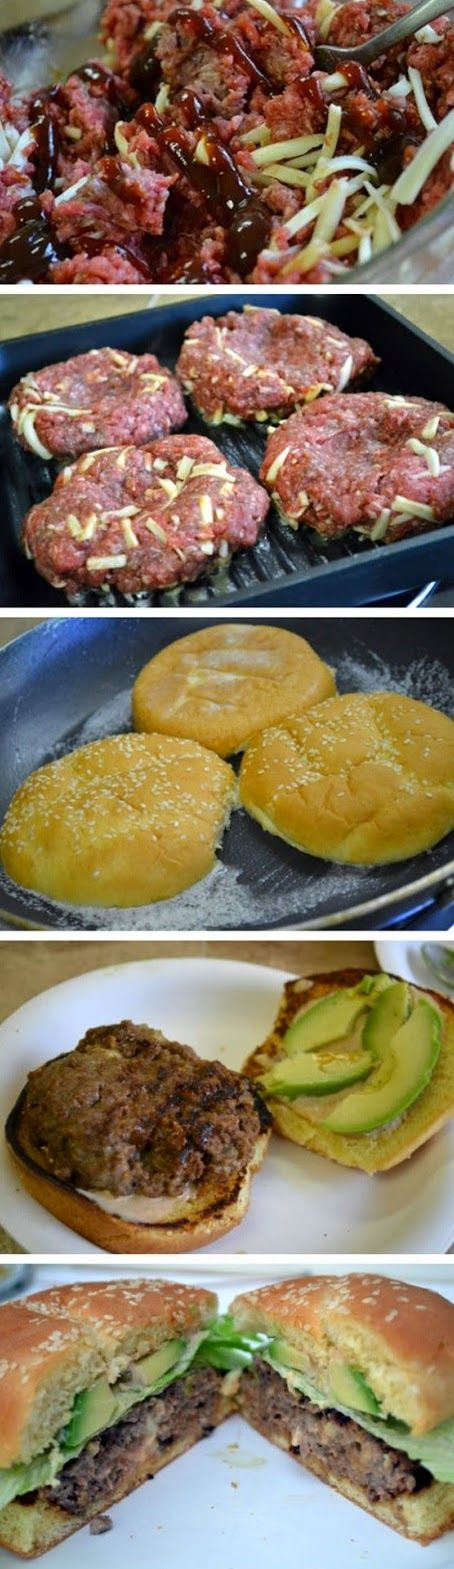 Best Burger Recipe Ever   Easy and Quick Recipes